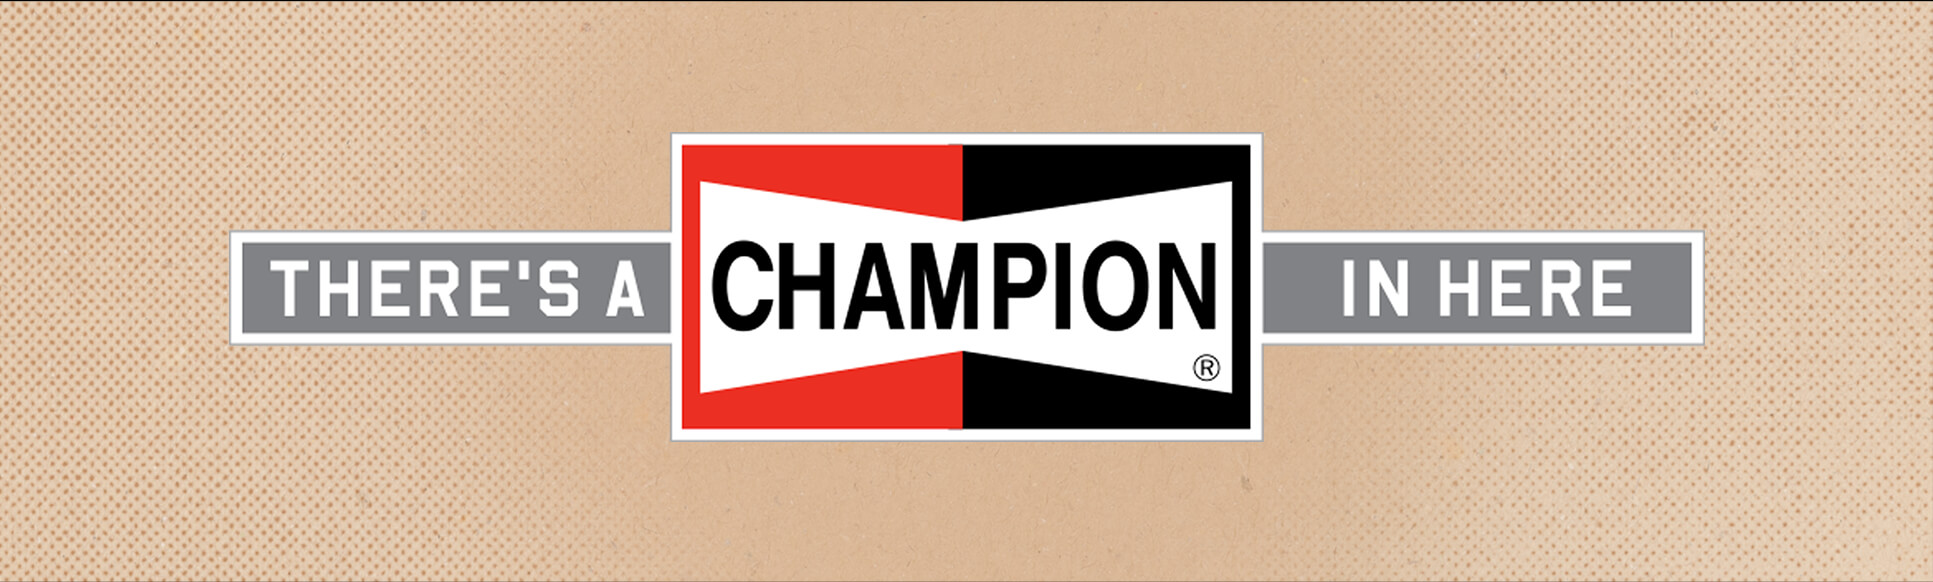 Champion Spark Plug Slogan - There's a Champion in Here